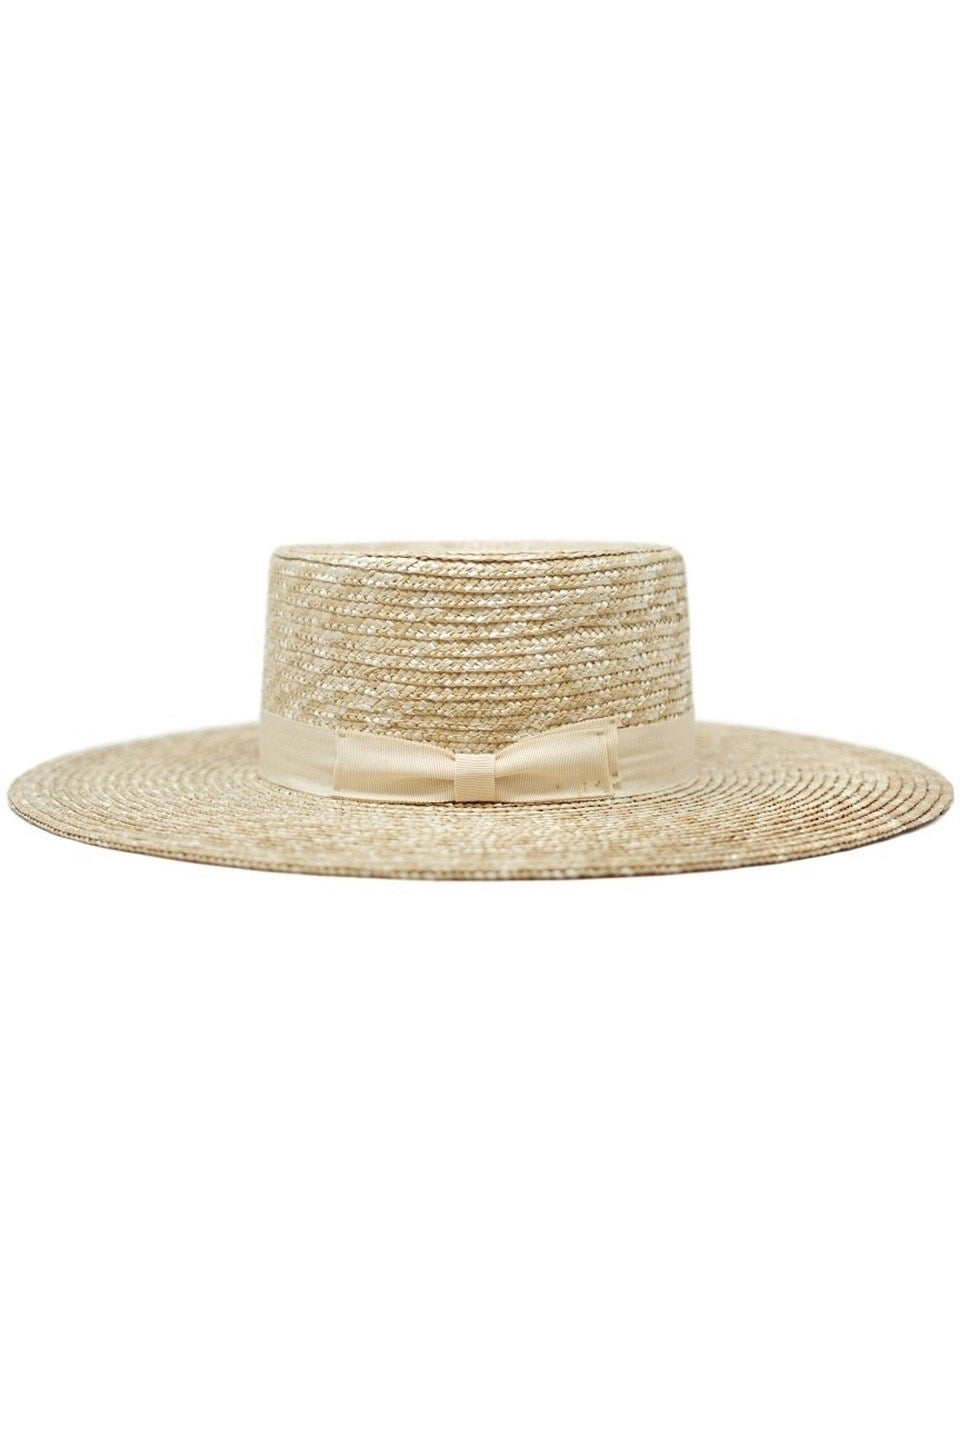 Kenzie Straw Hat